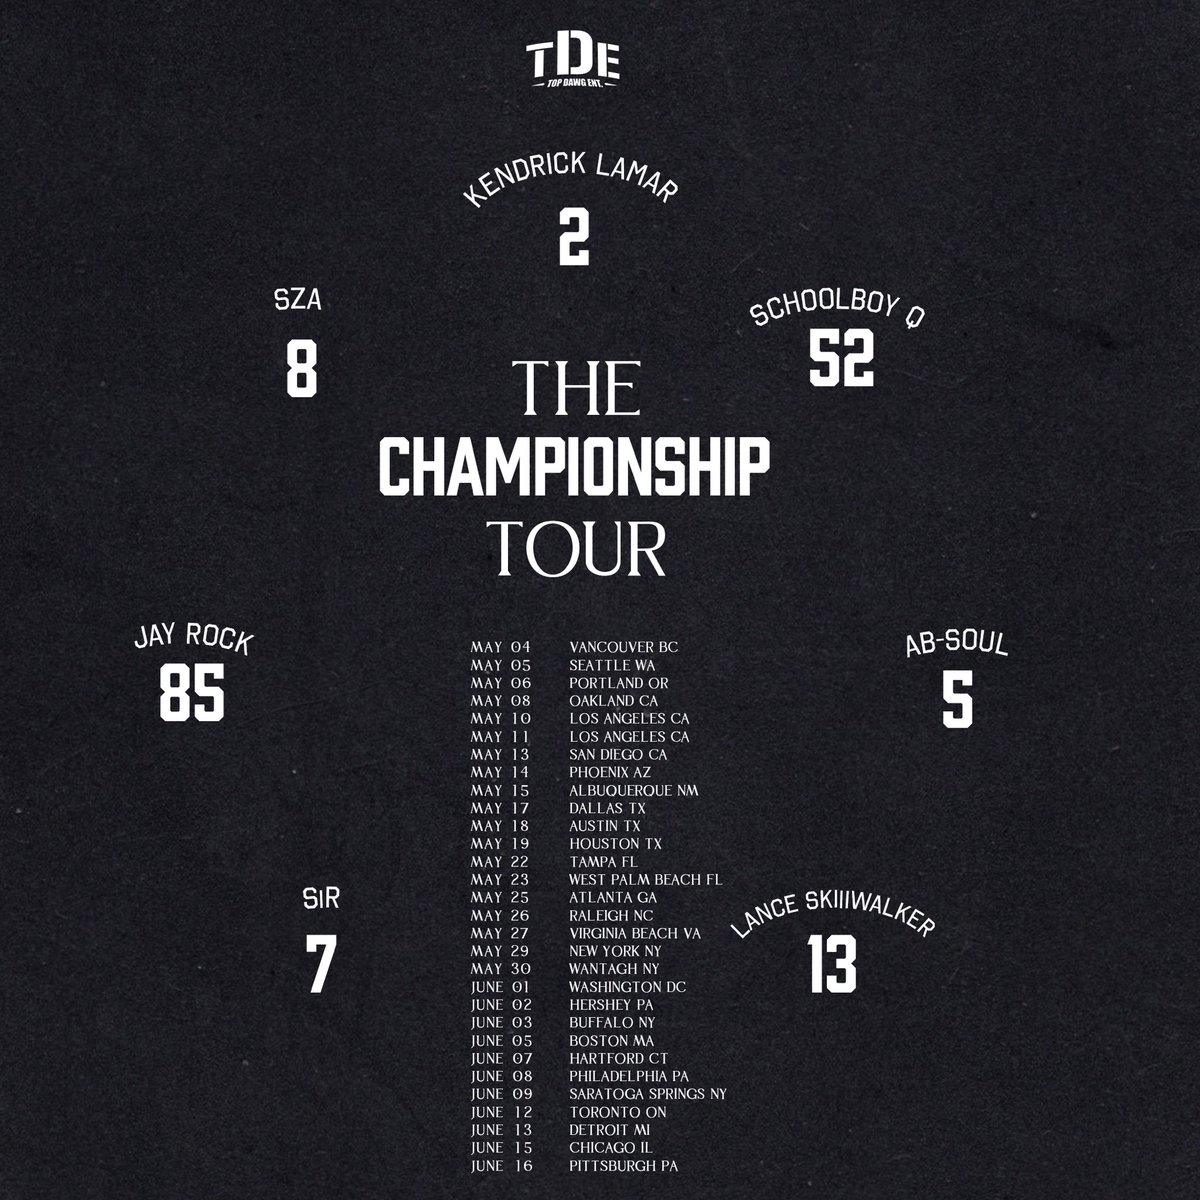 TDE Announces 'The Championship Tour' feat. Kendrick Lamar, SZA, Schoolboy Q, Jay Rock